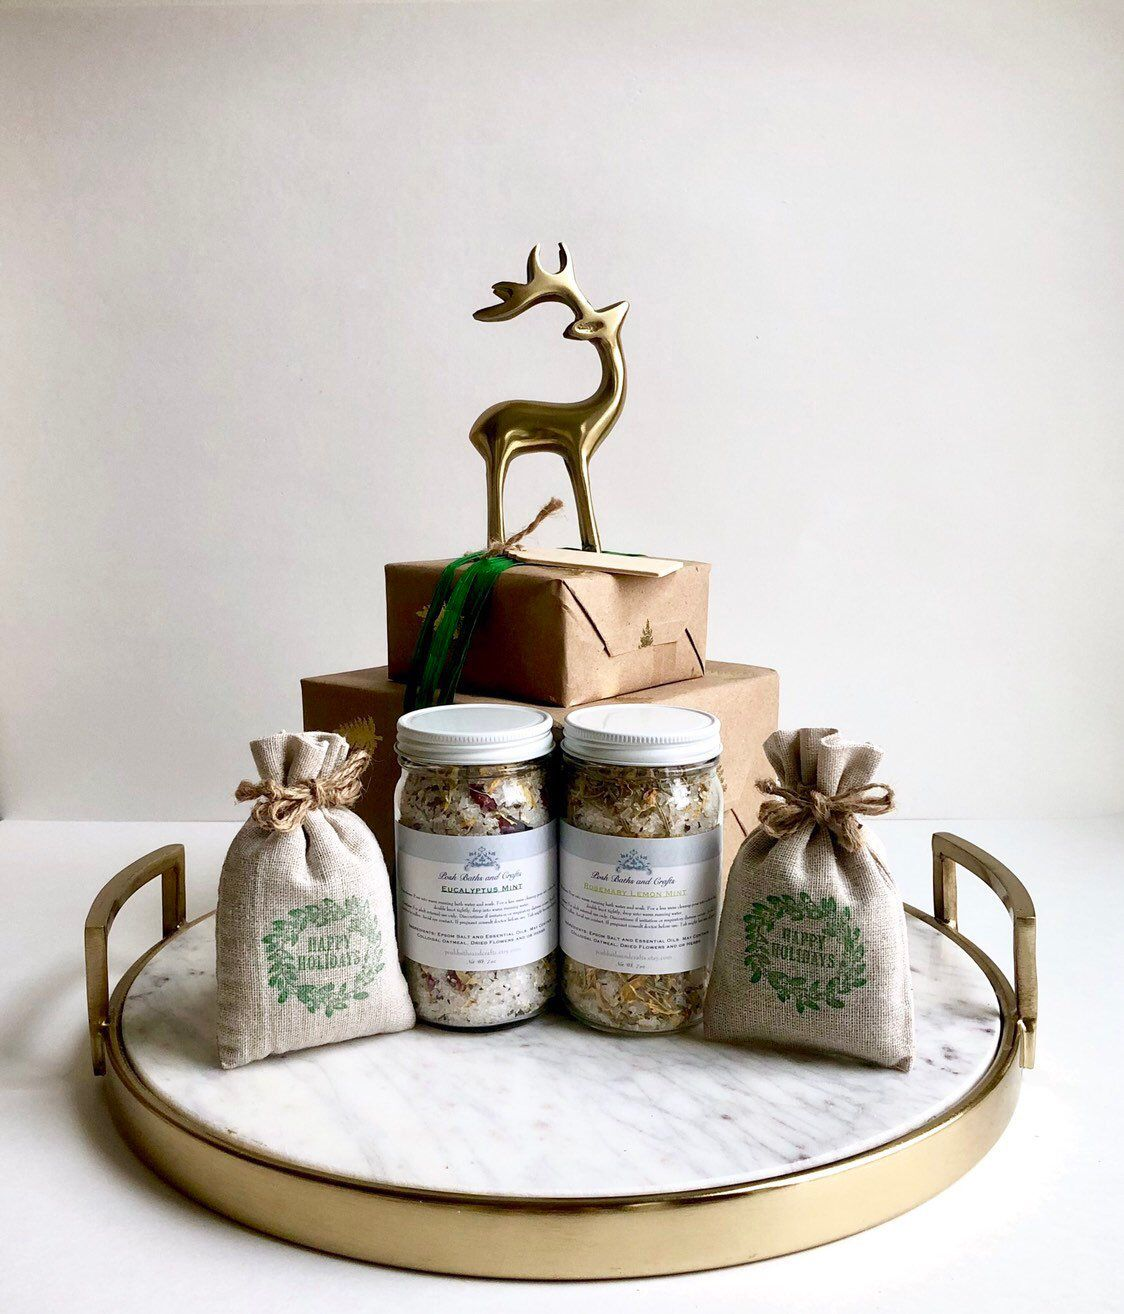 Bath salts in a jar with lavender sachets gift set